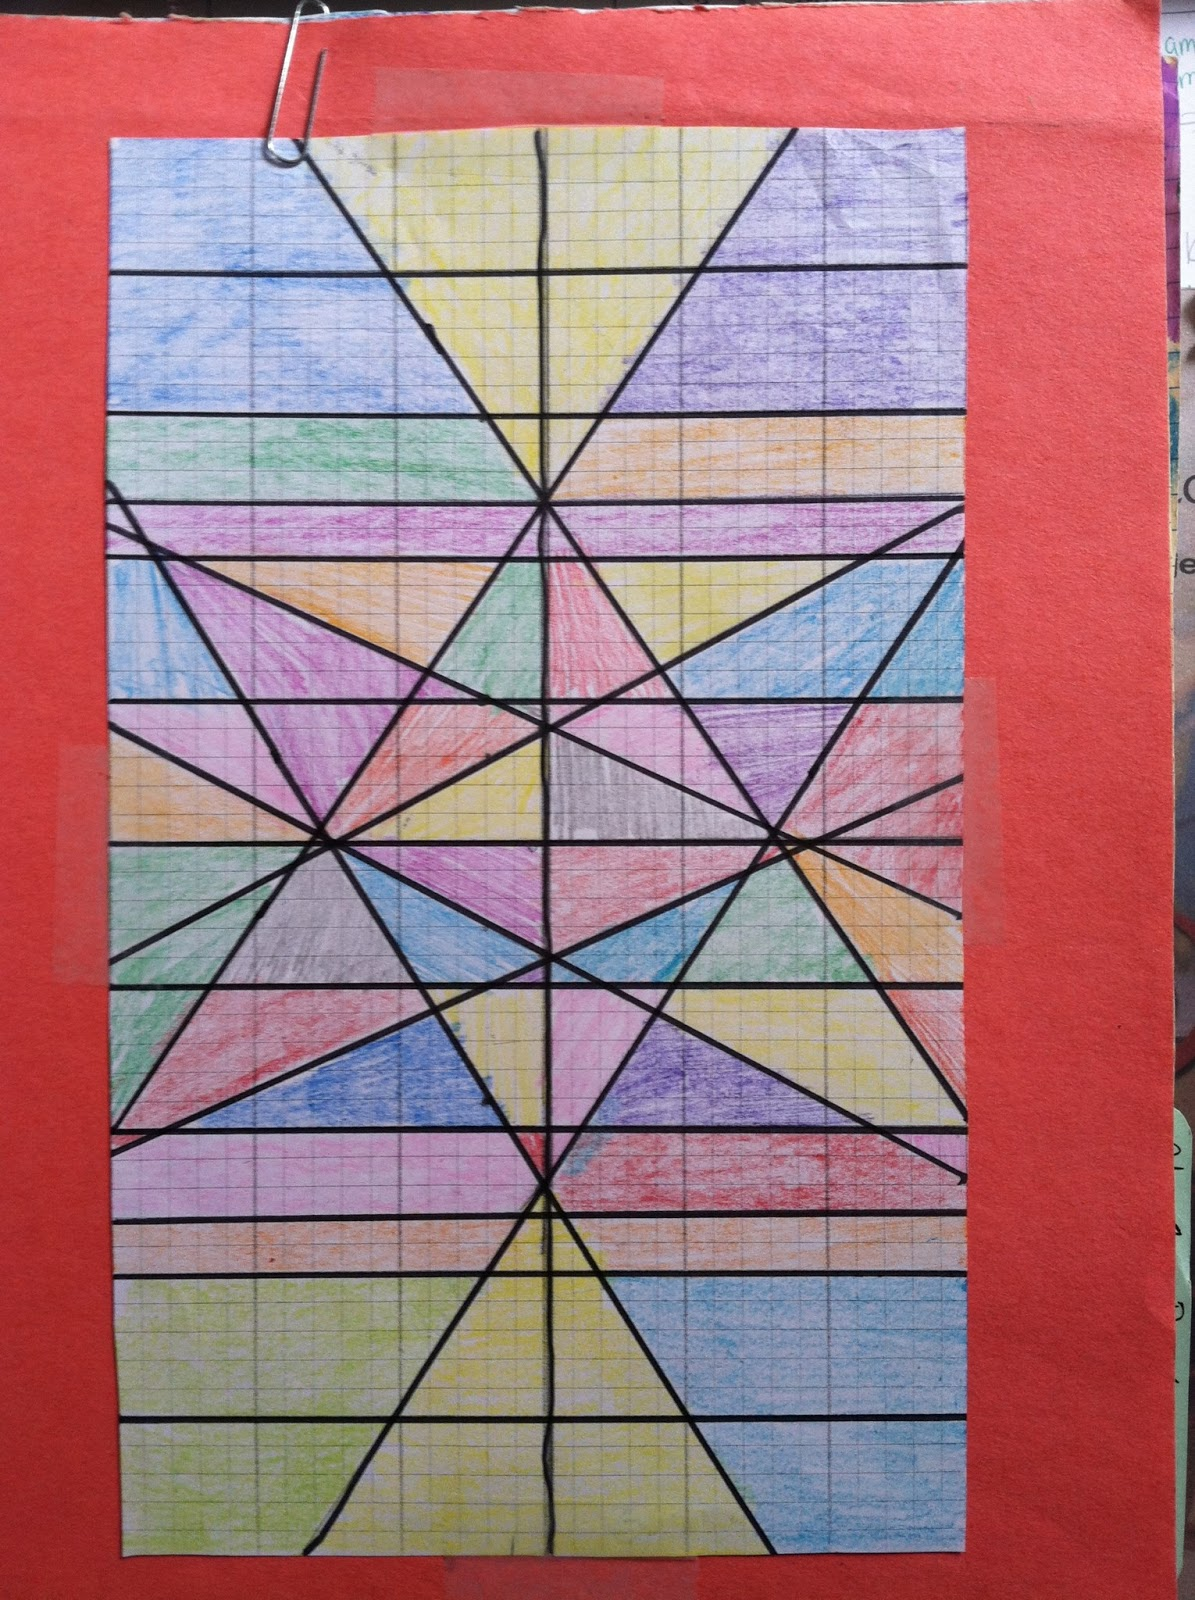 Graphing Linear Equations Art Project